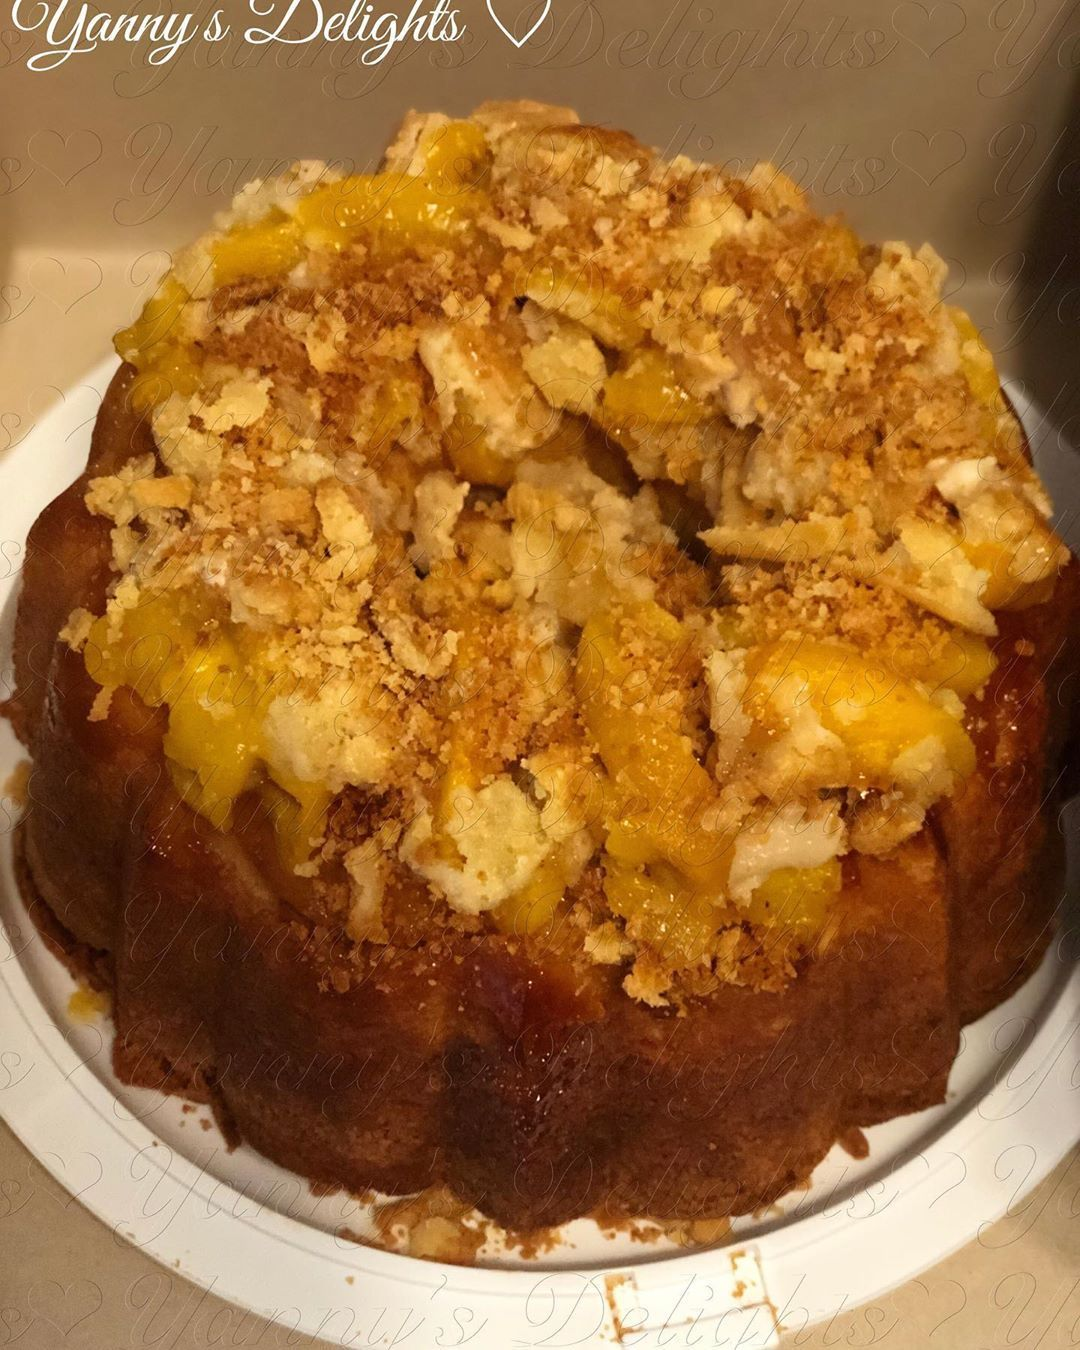 My Version Of The Peach Cobbler Pound Cake Without A Glaze My Version Of The Peach Cobbler Pound Cake Without A Glaze #peachcobblerpoundcake